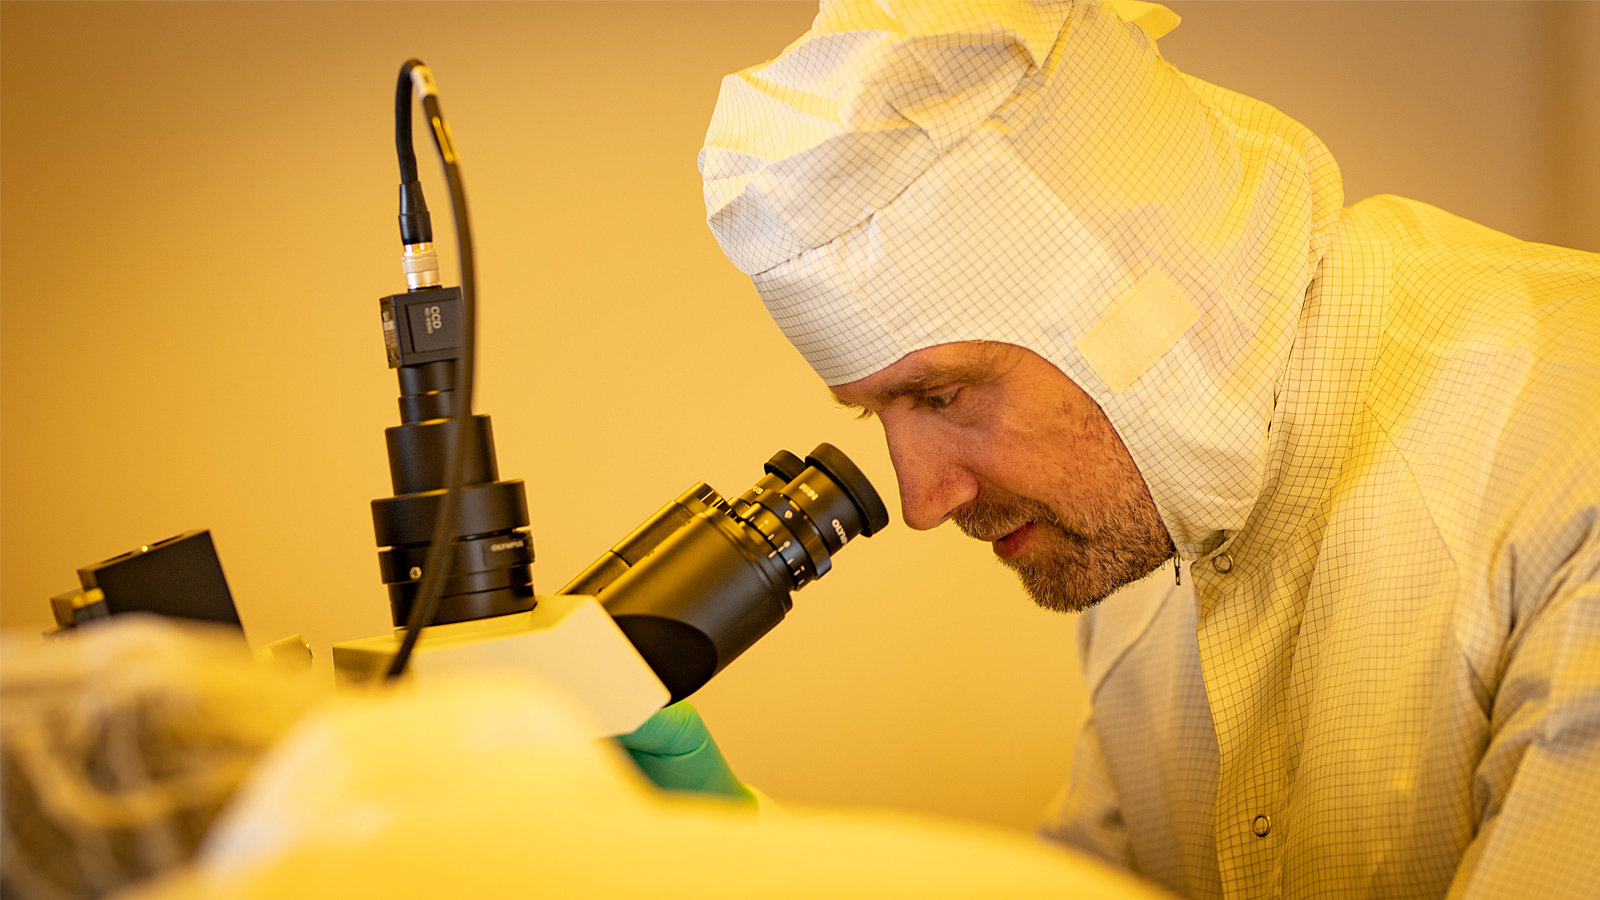 A man in the middle ages wears a protection suite and looks into a microscope.